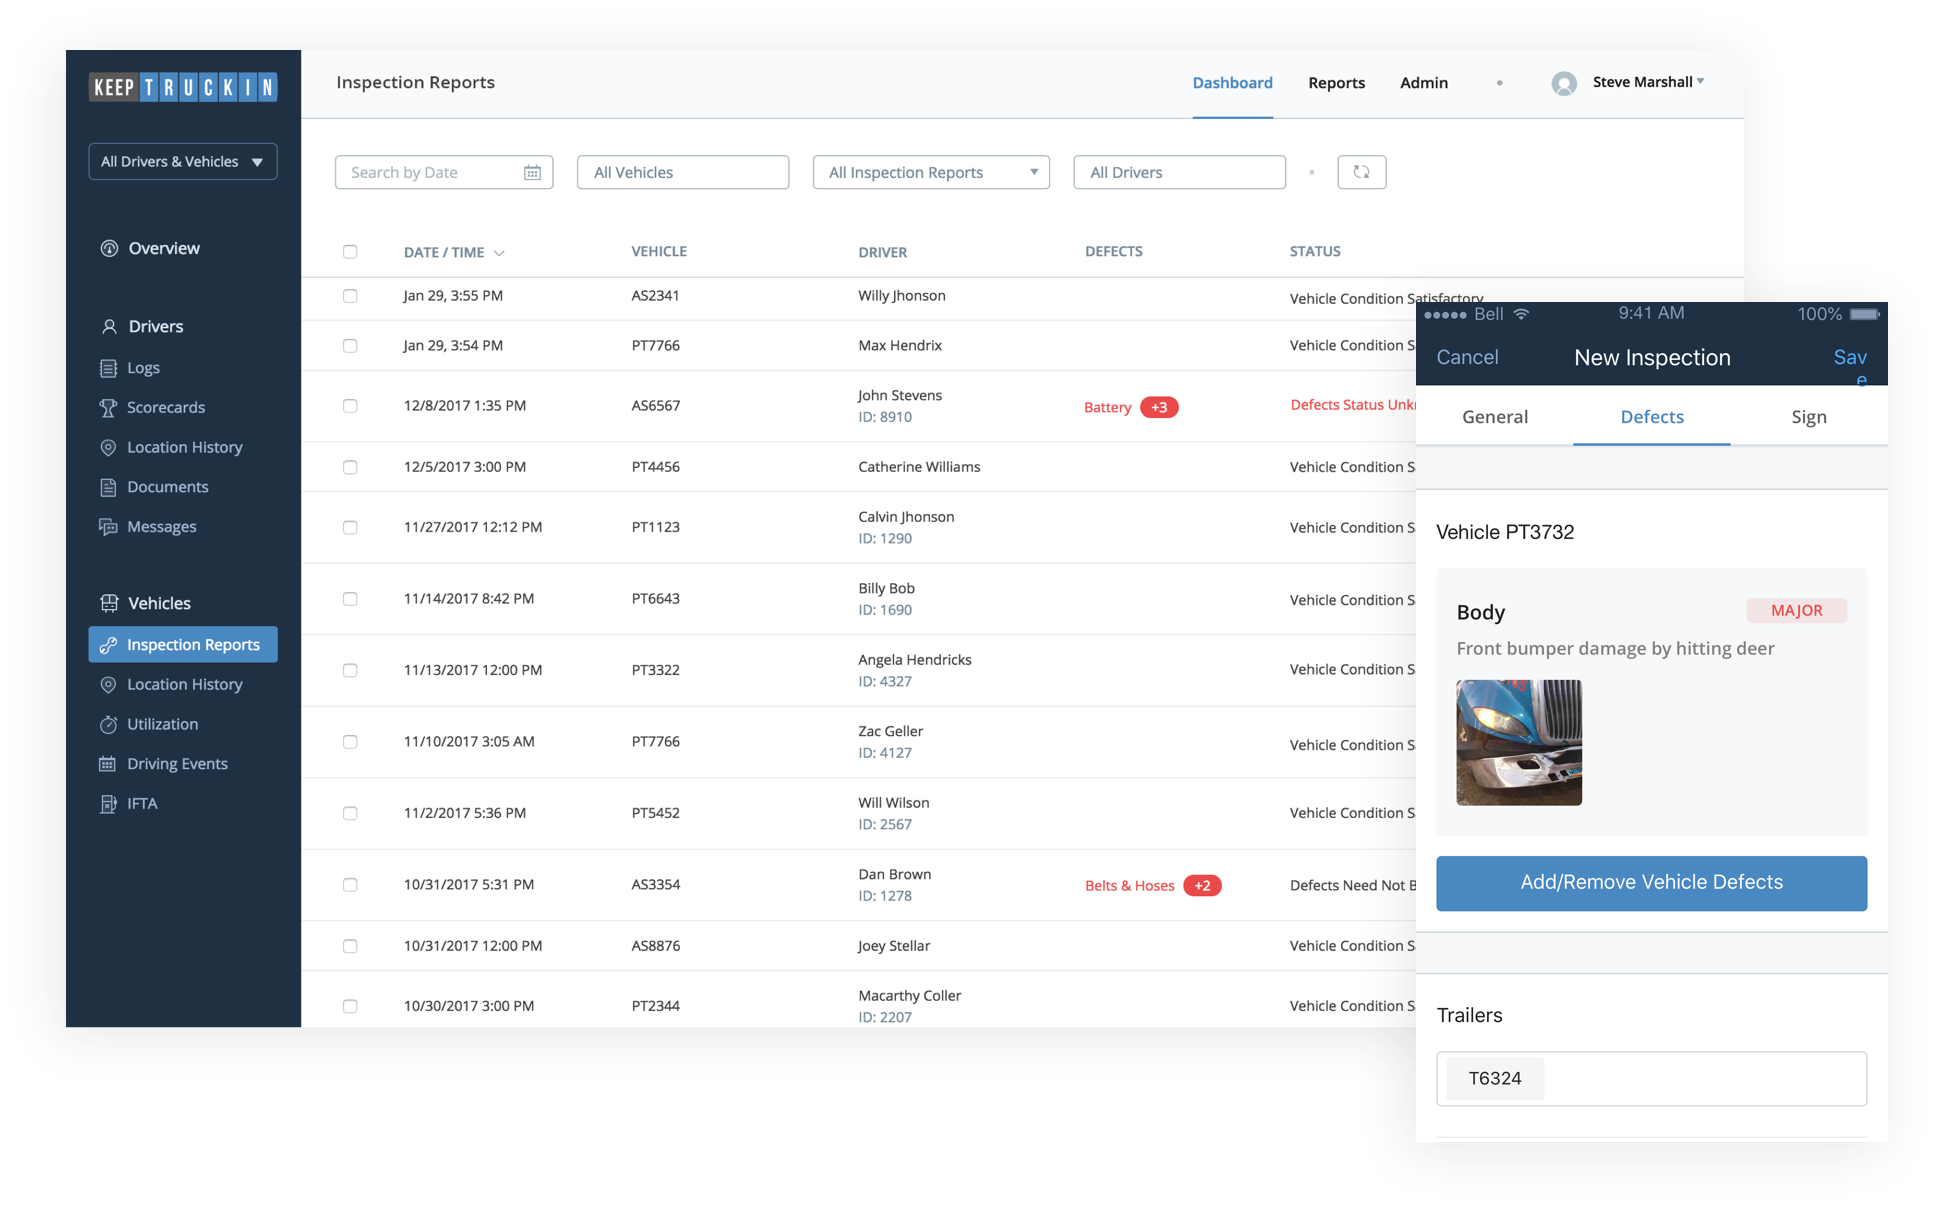 inspection reports in dashboard